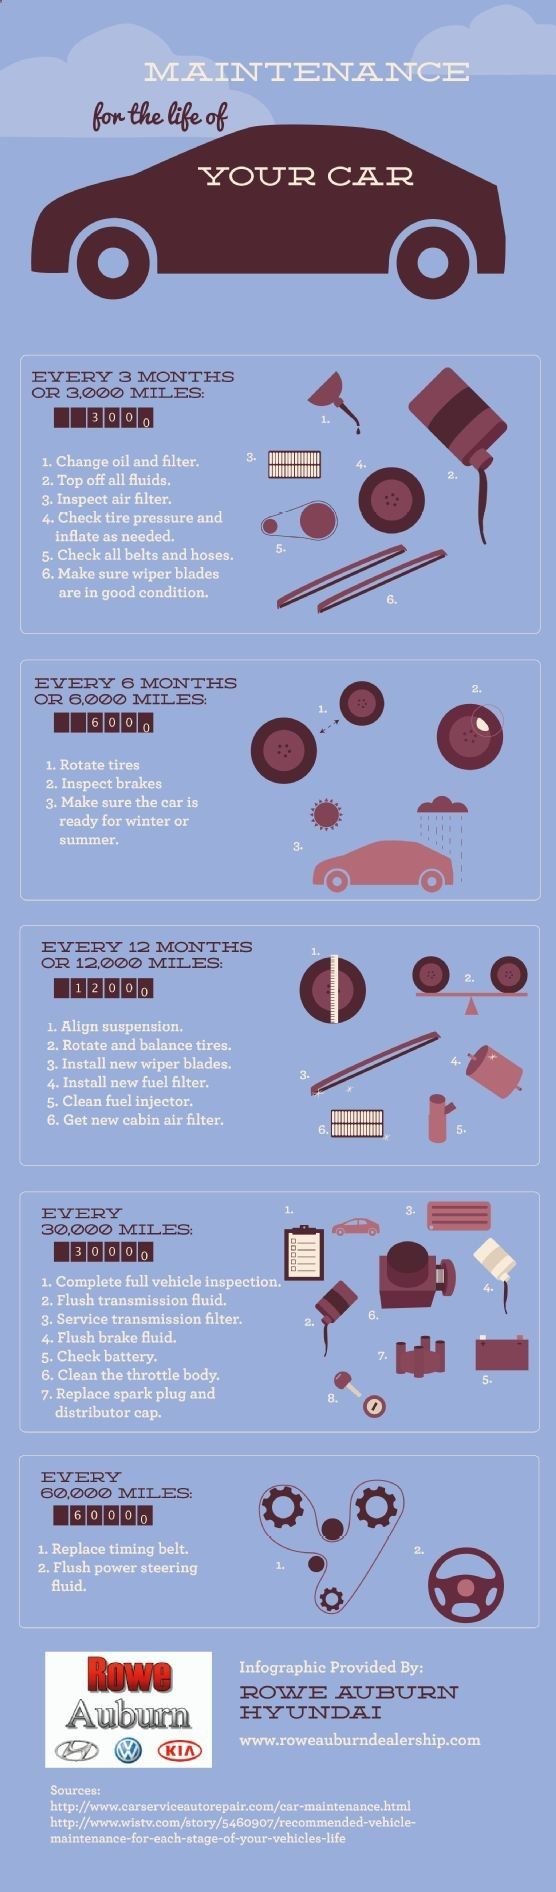 Battery Reconditioning - Battery Reconditioning - Did you know that your vehicle needs a complete inspection every 30,000 miles? If you want to get the most out of your car, you should keep up with regular maintenance checks. This infographic time table shows you how. Original source: www.roweauburndea... - Save Money And NEVER Buy A New Battery Again Save Money And NEVER Buy A New Battery Again